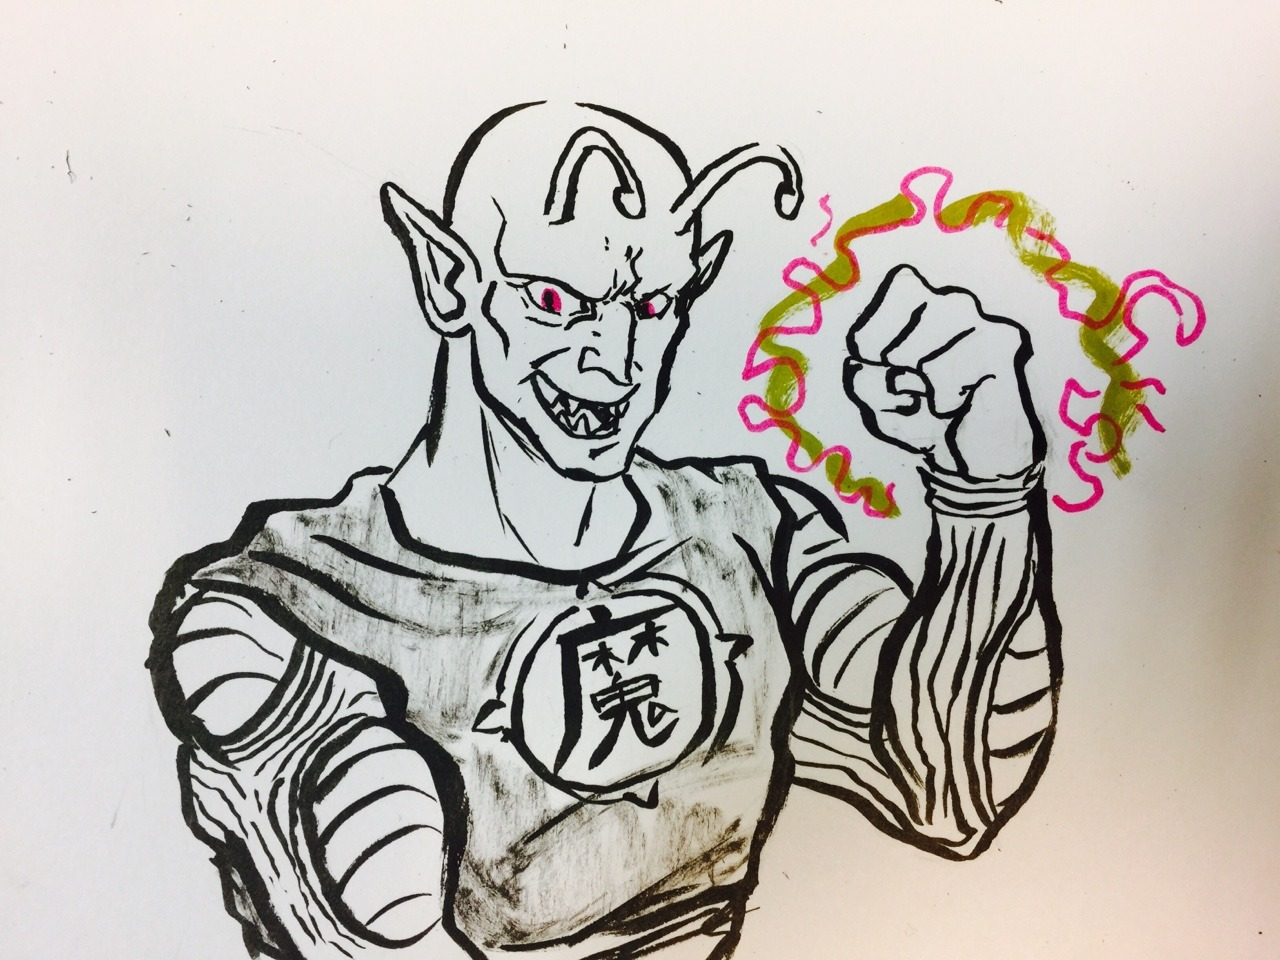 sporkbot: